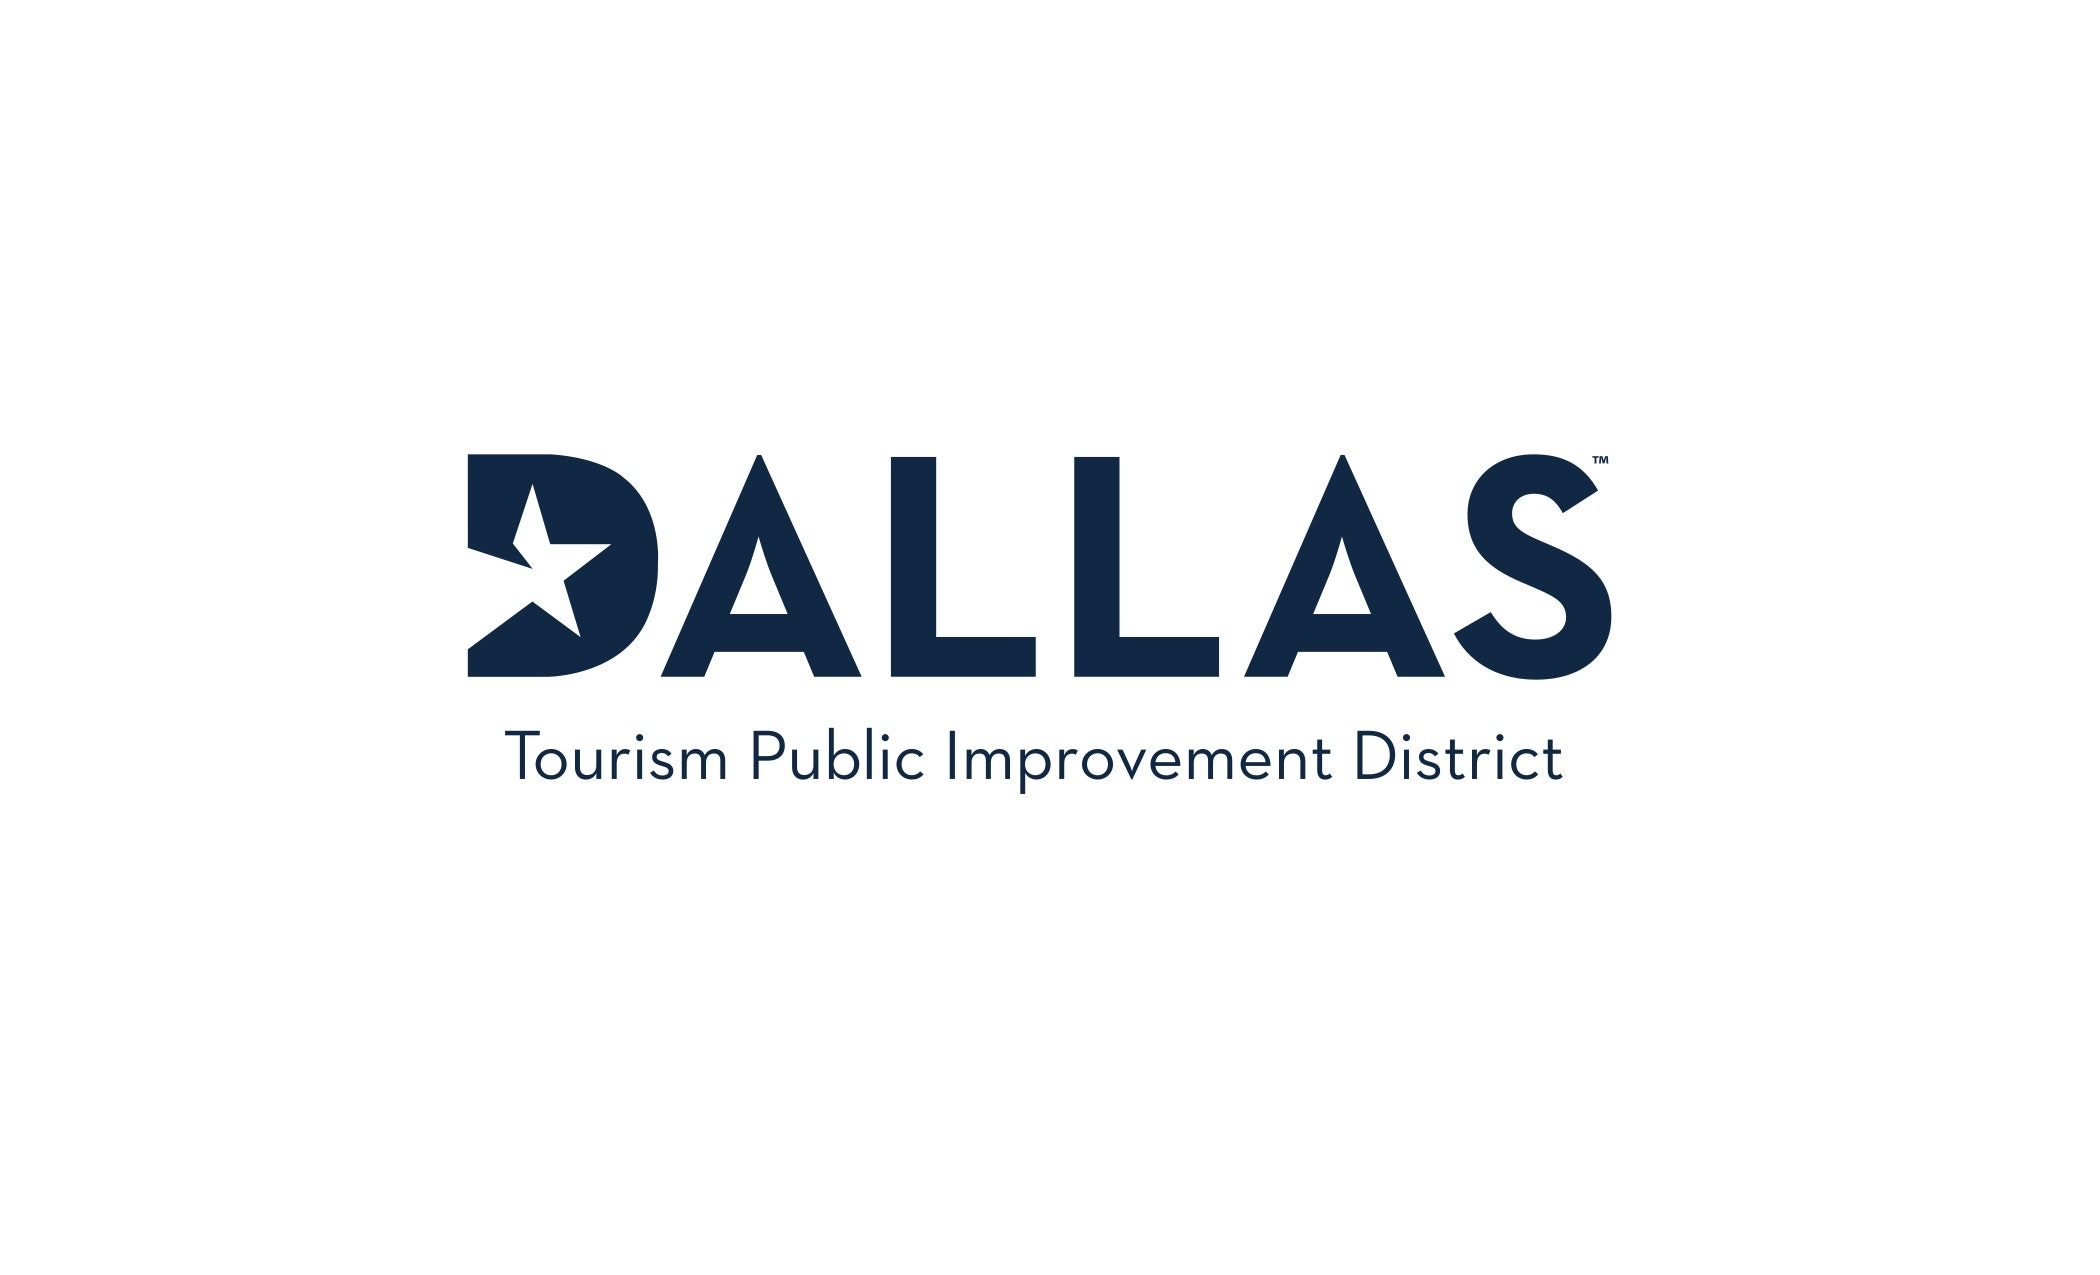 Dallas Tourism Public Improvement District